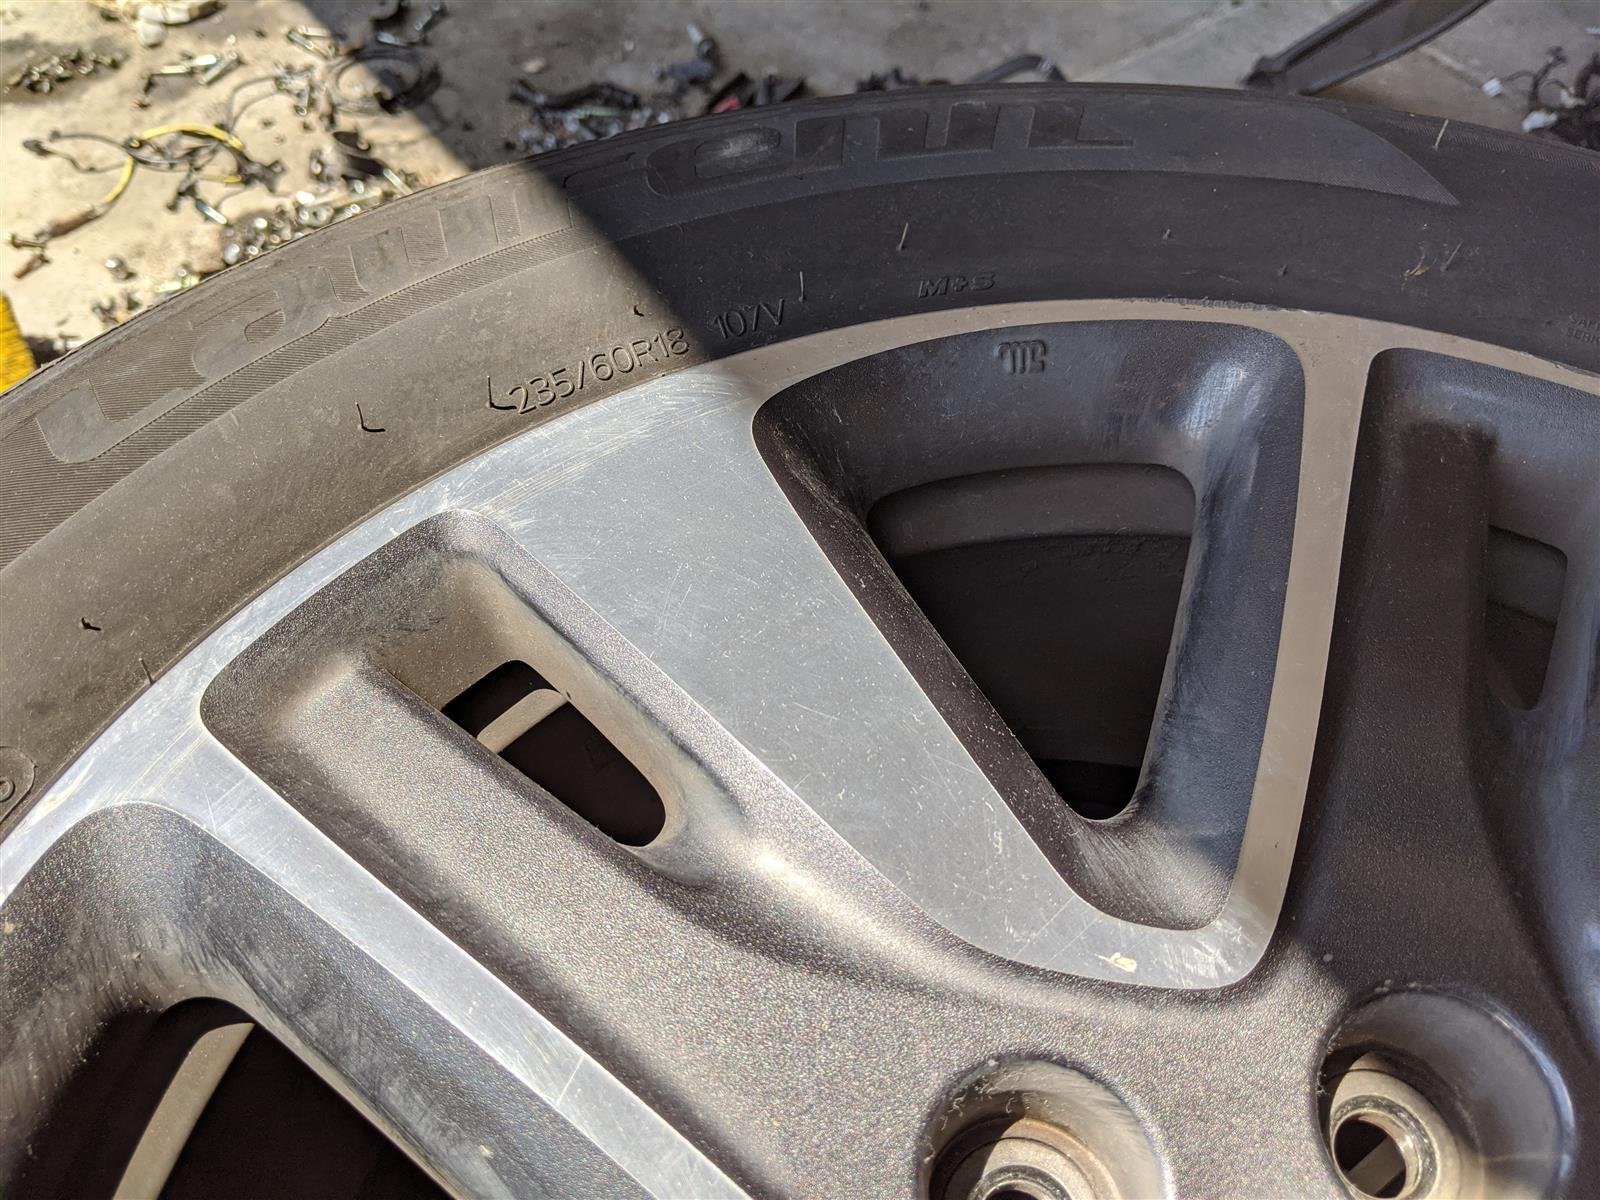 2014 Honda Odyssey Front Passenger 18 Inch Rim, Small Curb Replacement